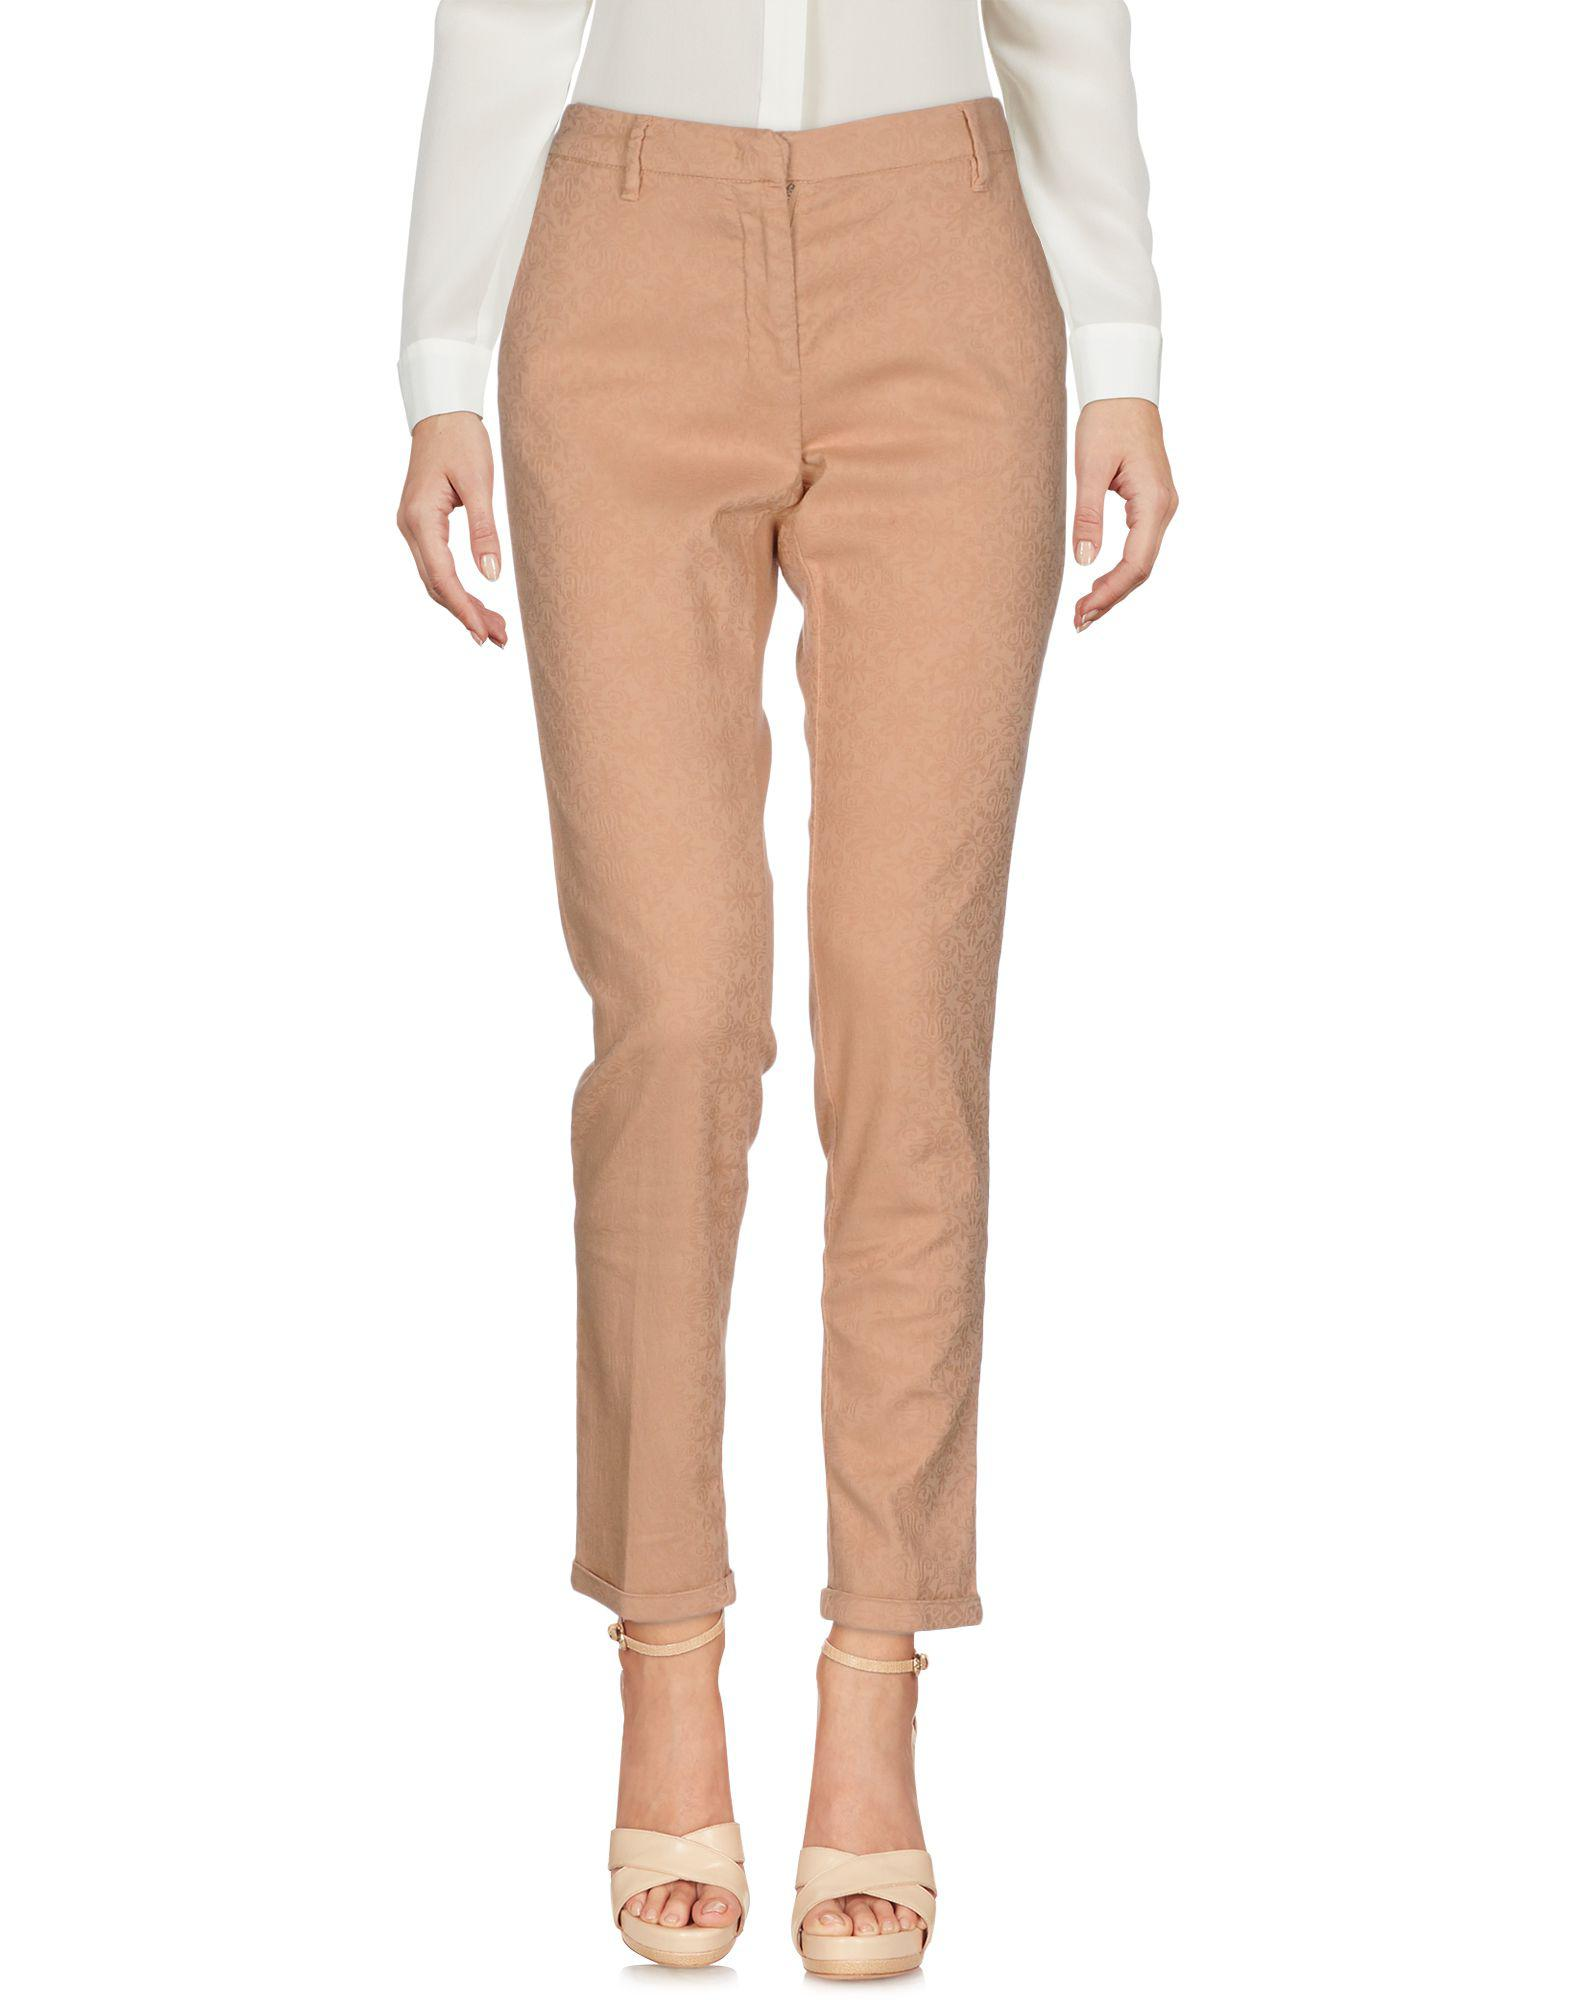 TROUSERS - Casual trousers AT.P. CO Outlet Best Seller kYQ0Qzz